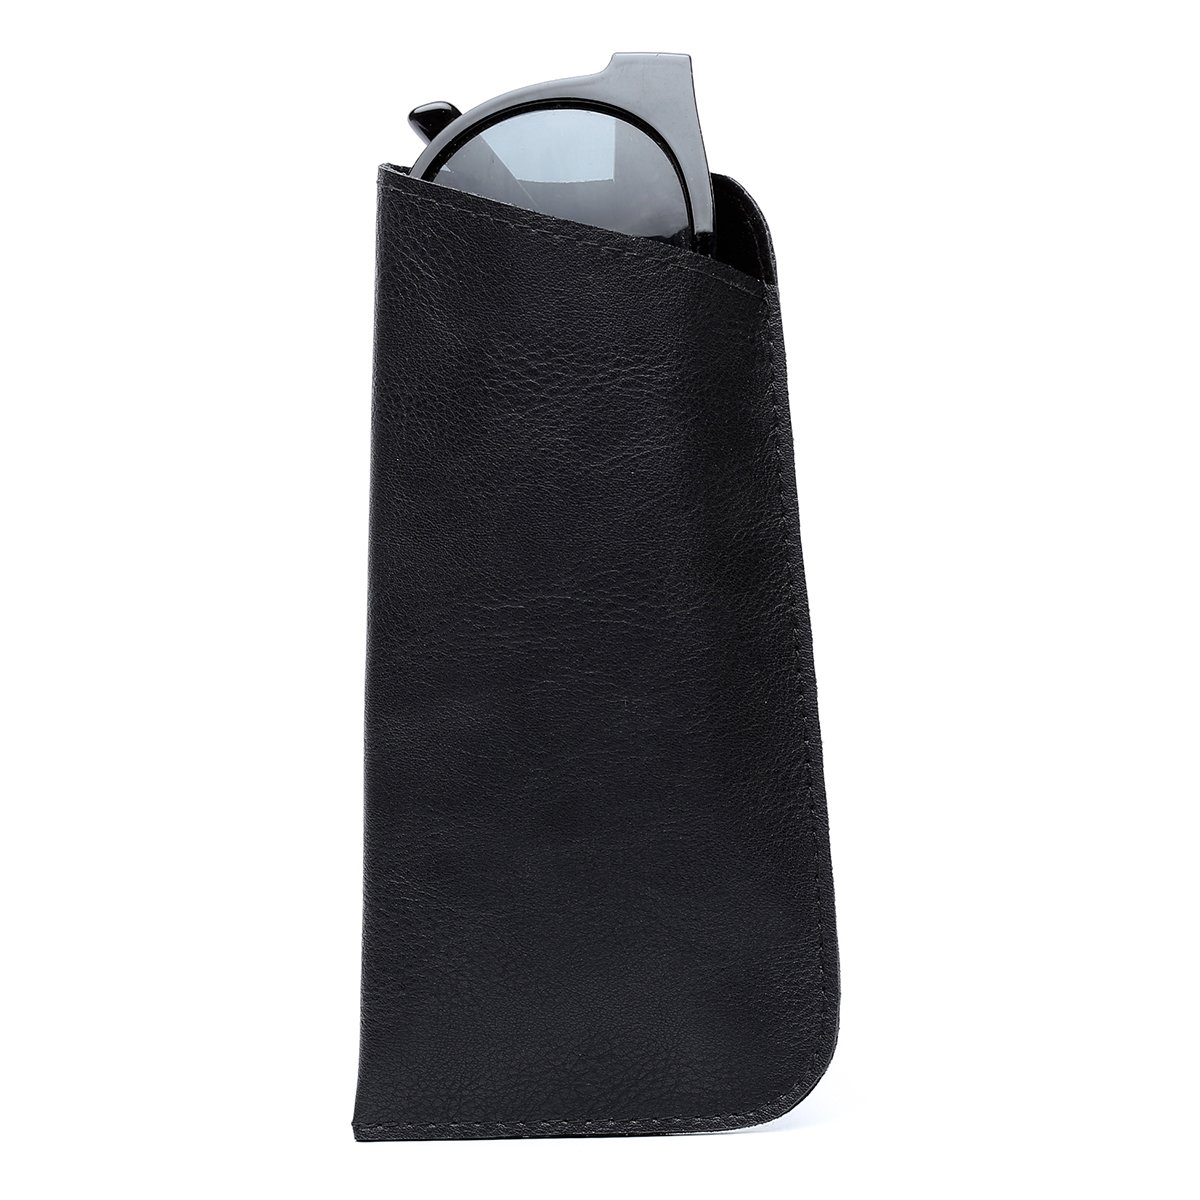 2 Pack Polemax Soft Slip in PU Leather Eyeglasses Sunglasses Pouch Case Portable Glasses Protection Bag